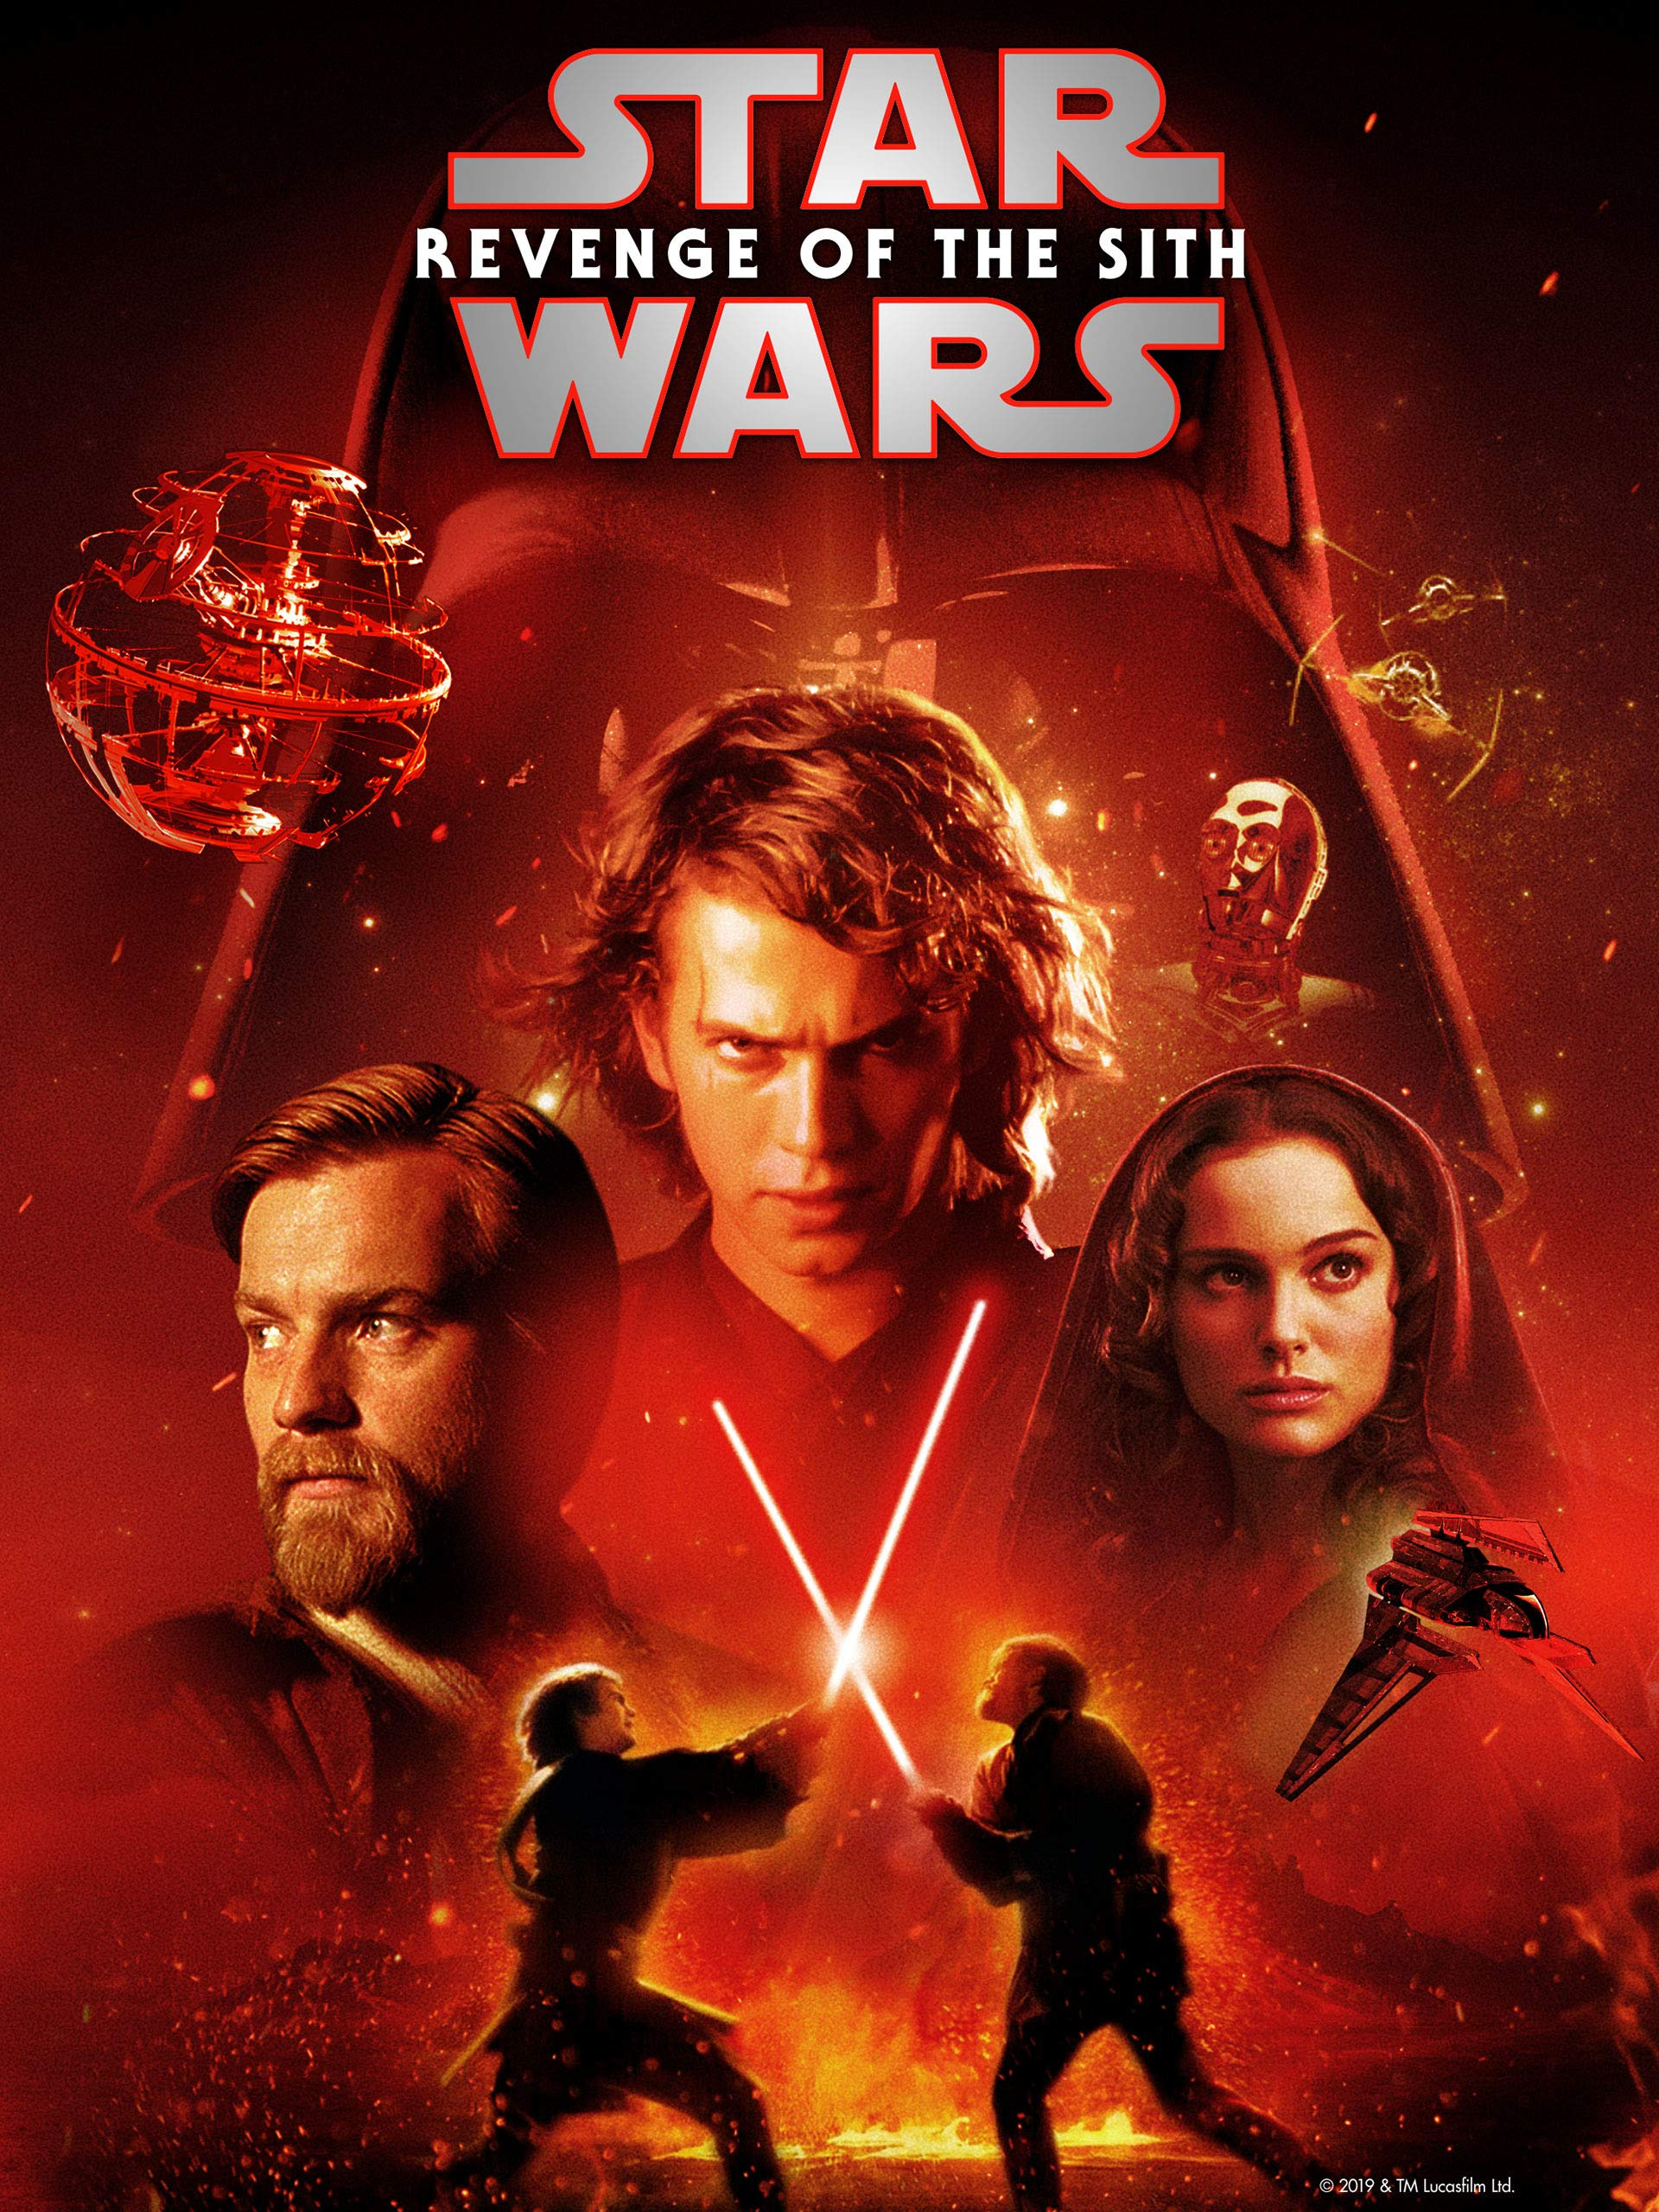 Watch Star Wars Revenge Of The Sith 4k Uhd Prime Video